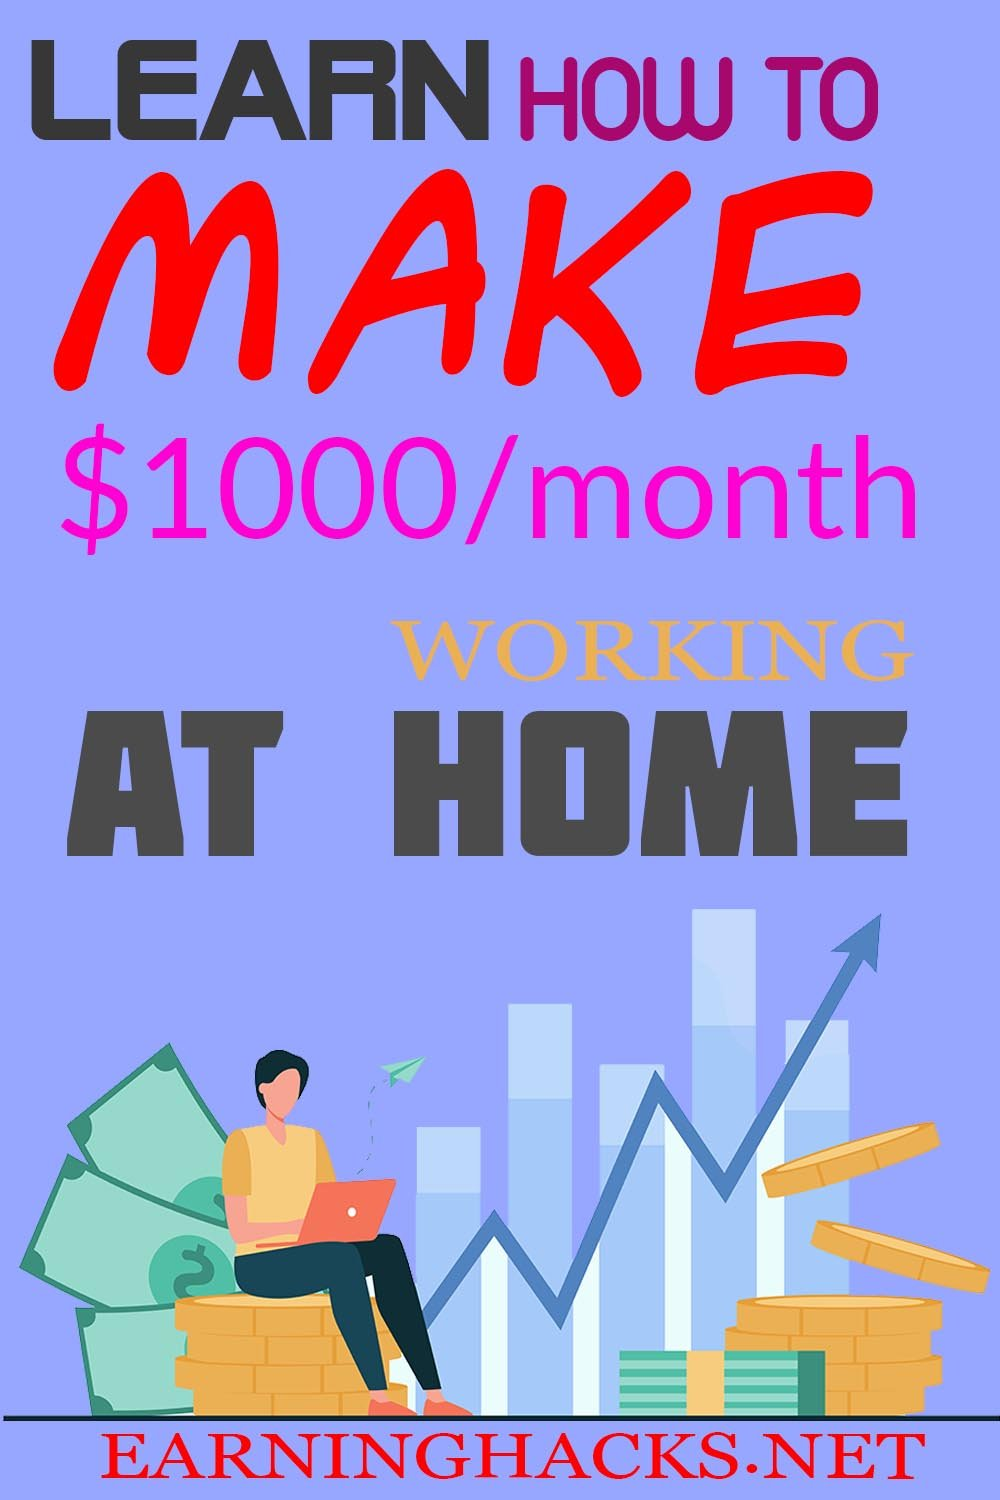 Learn How To Make $1000/month Working At Home